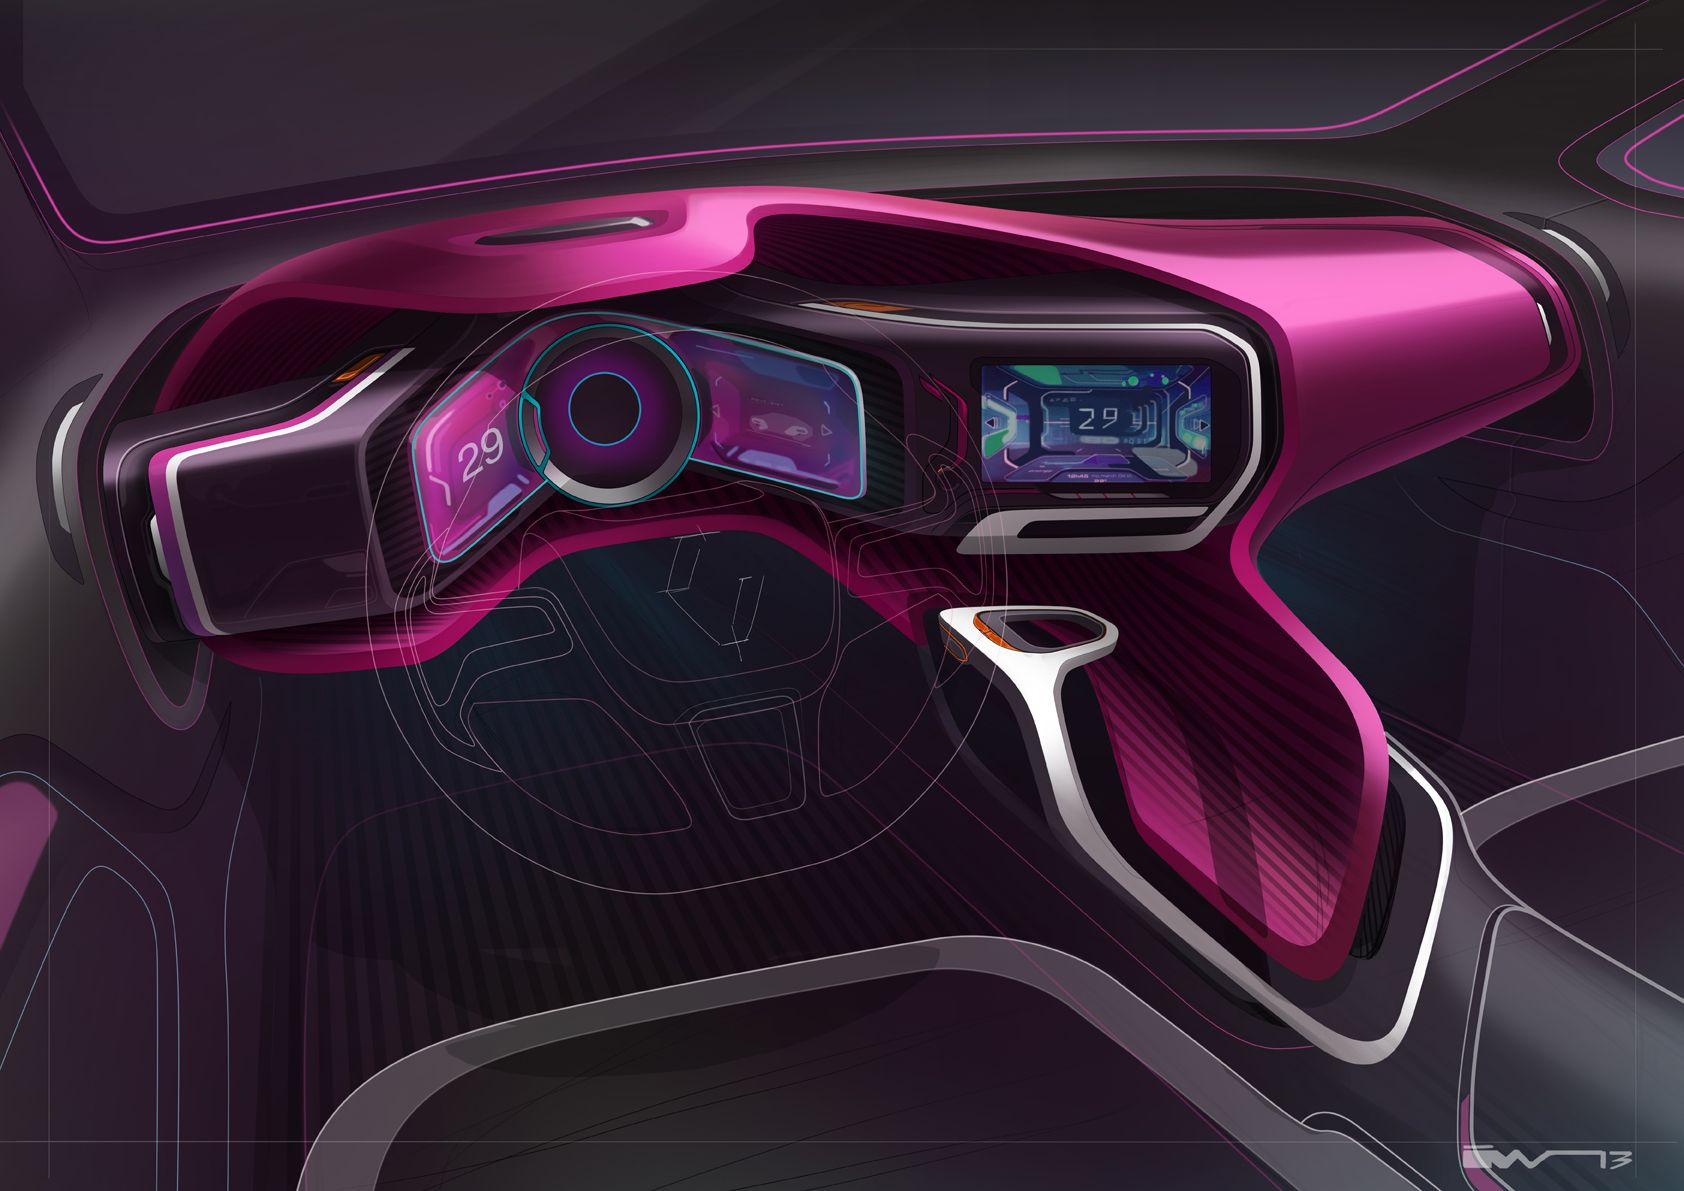 futuristic interior sketches pinterest futuristic interior futuristic and futuristic cars. Black Bedroom Furniture Sets. Home Design Ideas